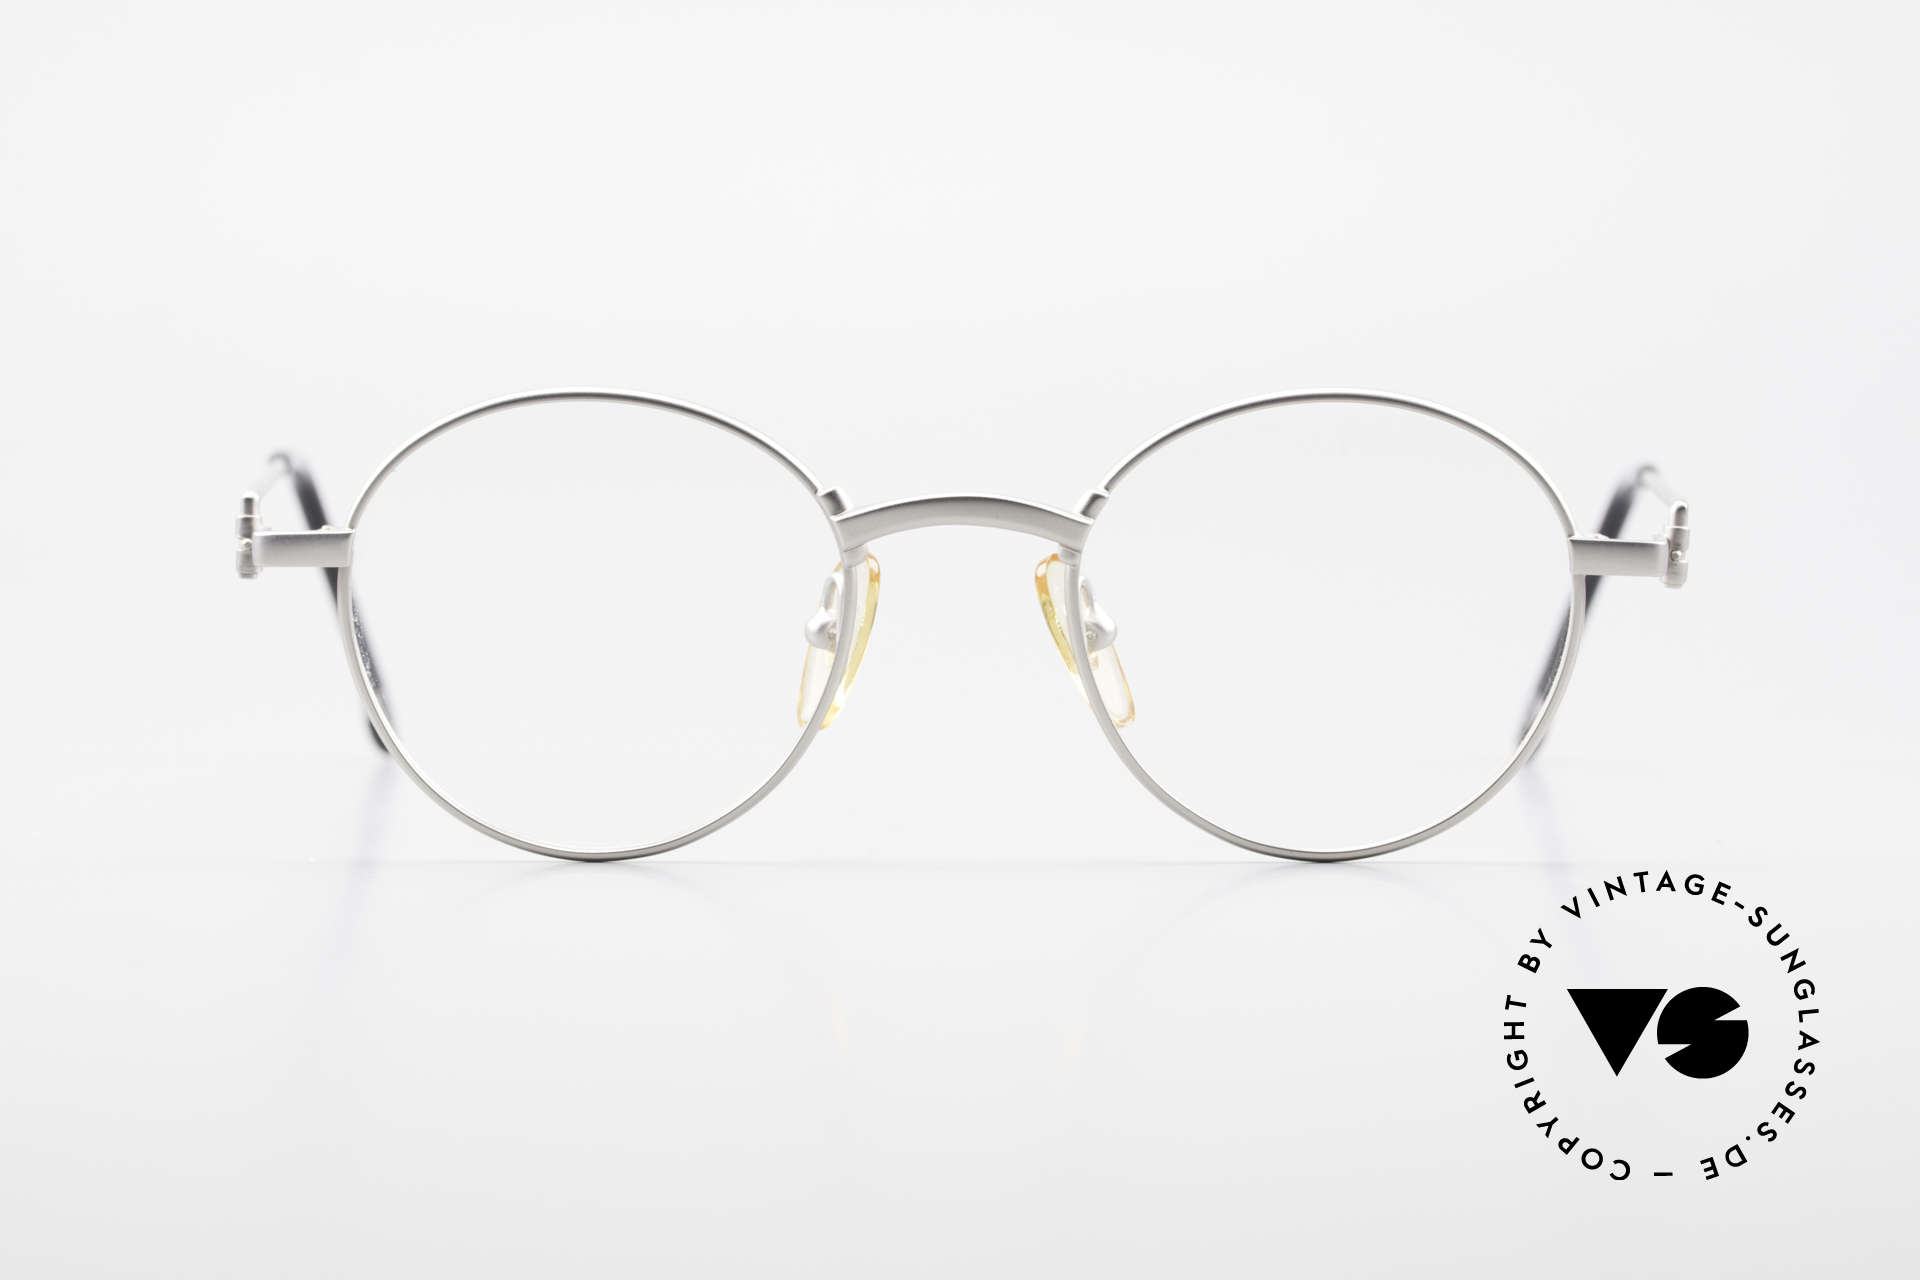 W Proksch's M32/8 Panto Glasses 90s Avantgarde, back then, produced by Wolfgang Proksch himself, Made for Men